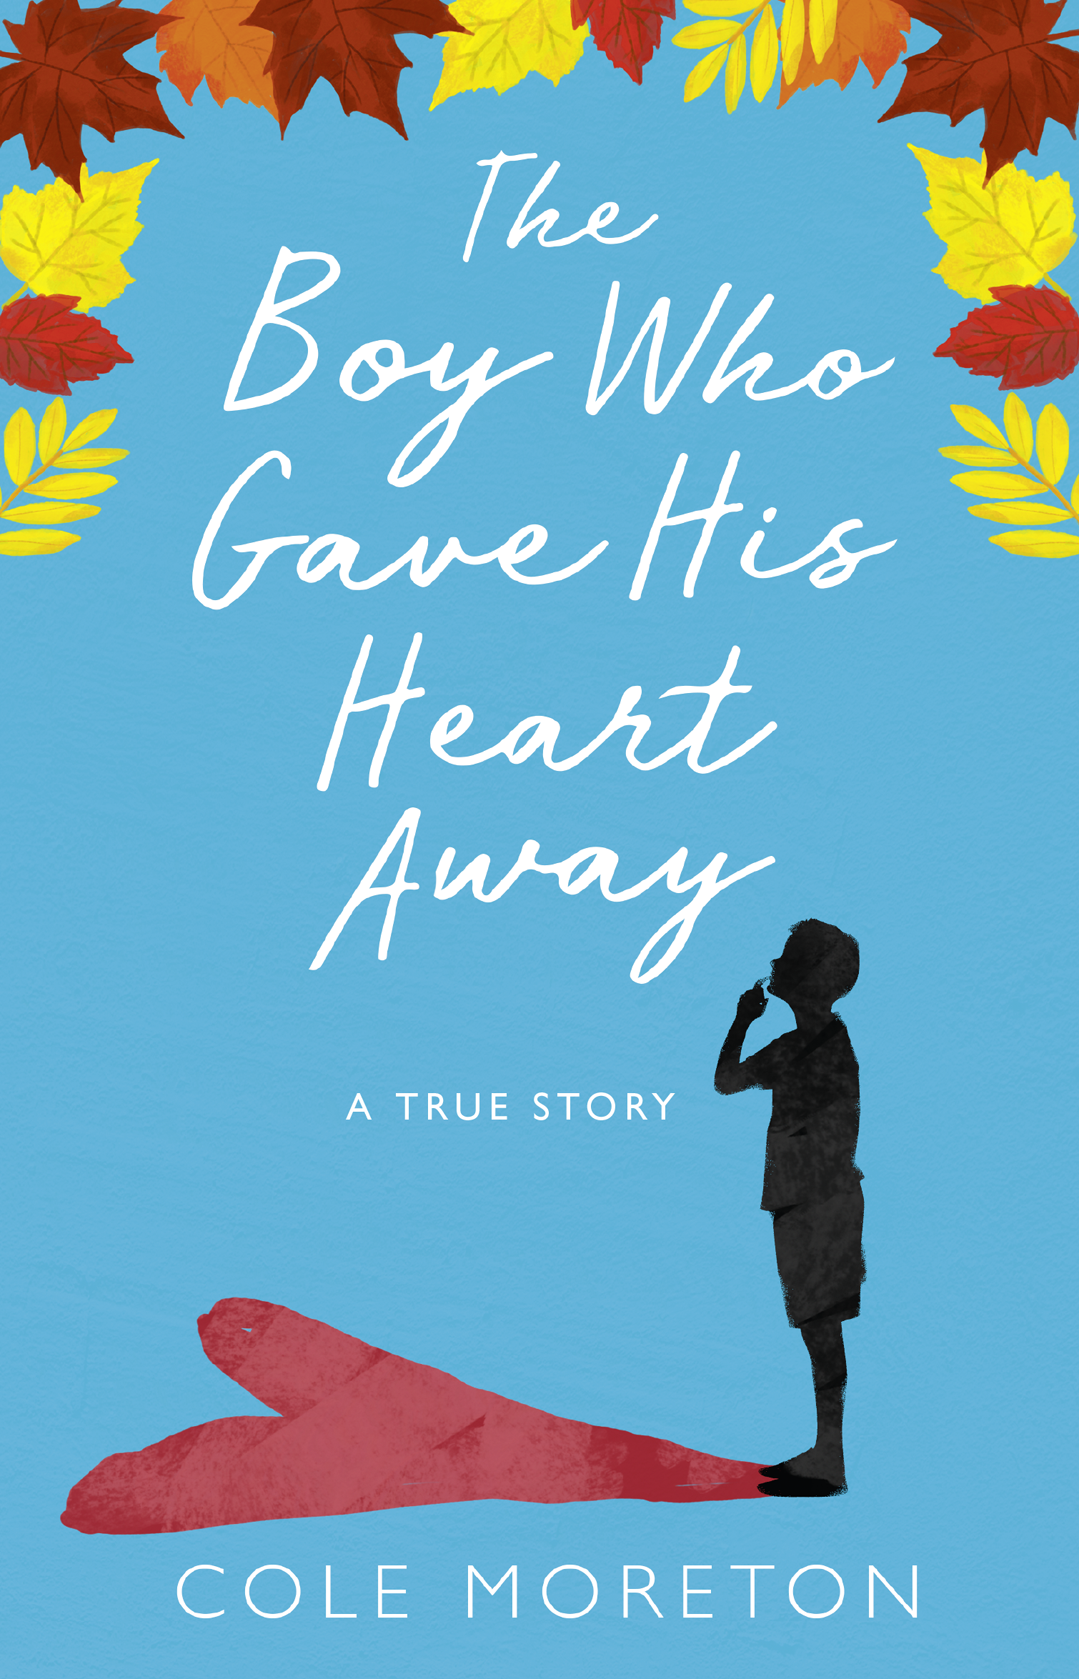 Cole Moreton The Boy Who Gave His Heart Away: A Death that Brought the Gift of Life the boy who saved baseball